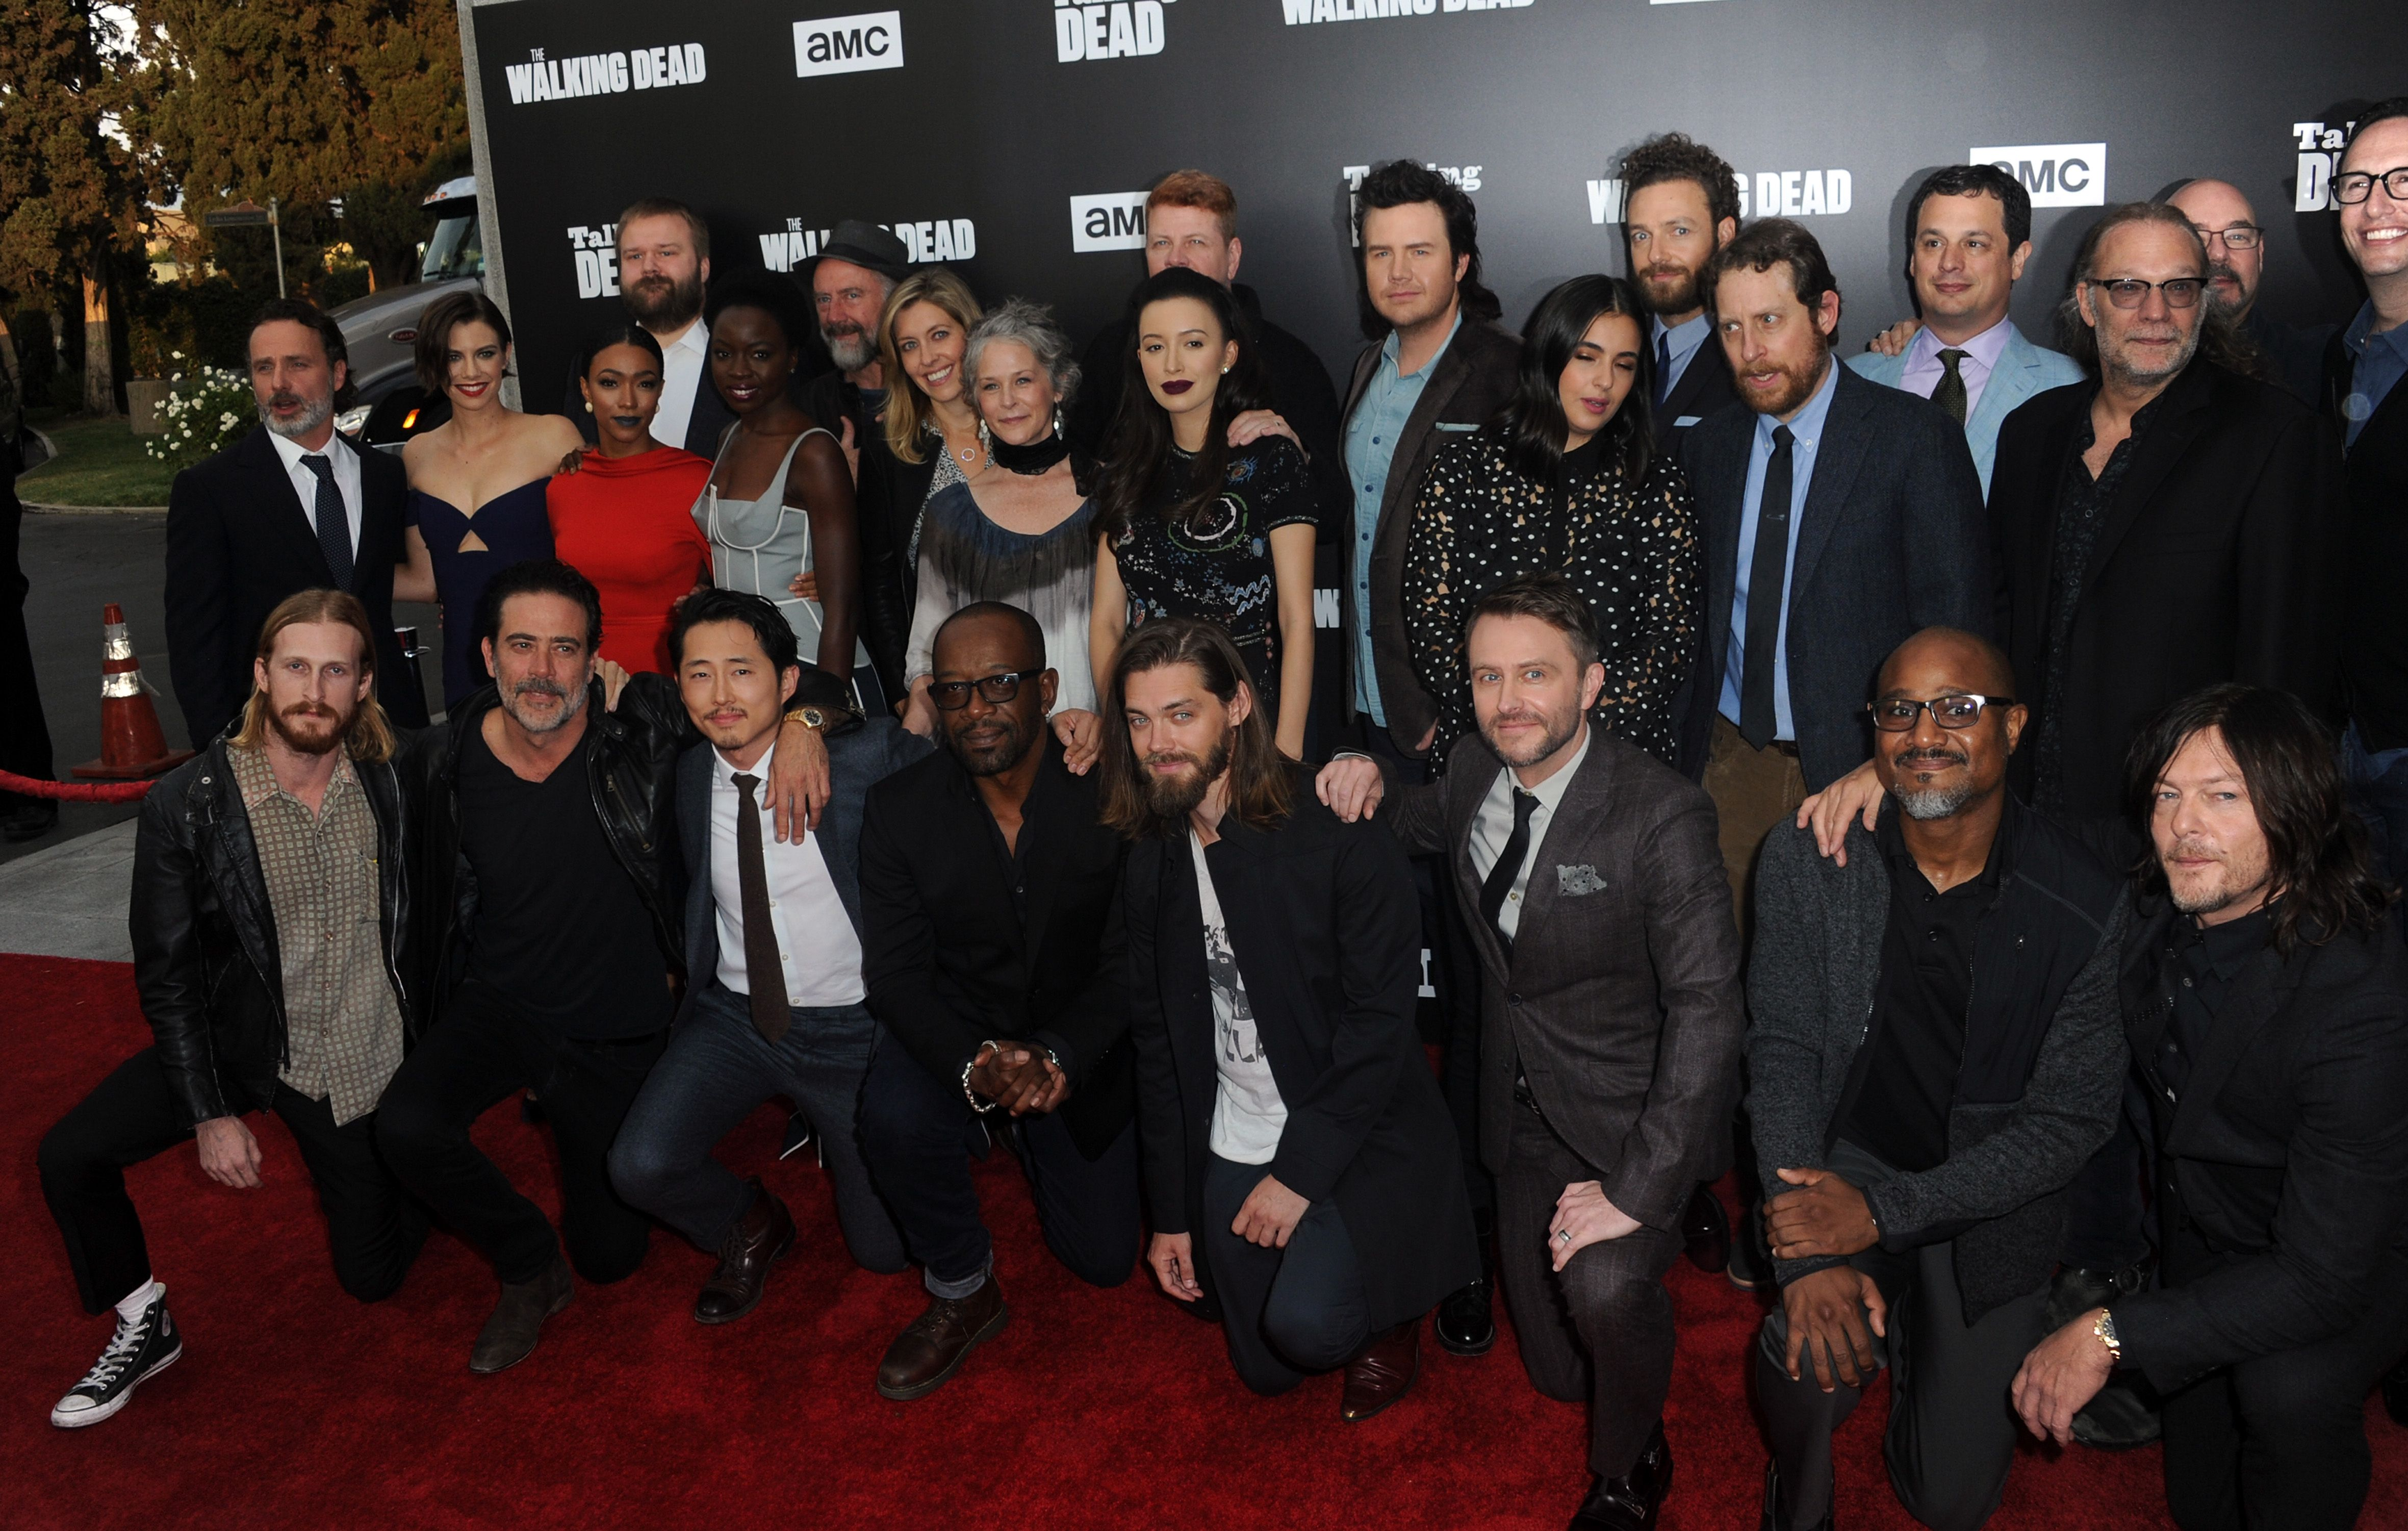 The cast of 'The Walking Dead' at the AMC Presents Live / Getty images